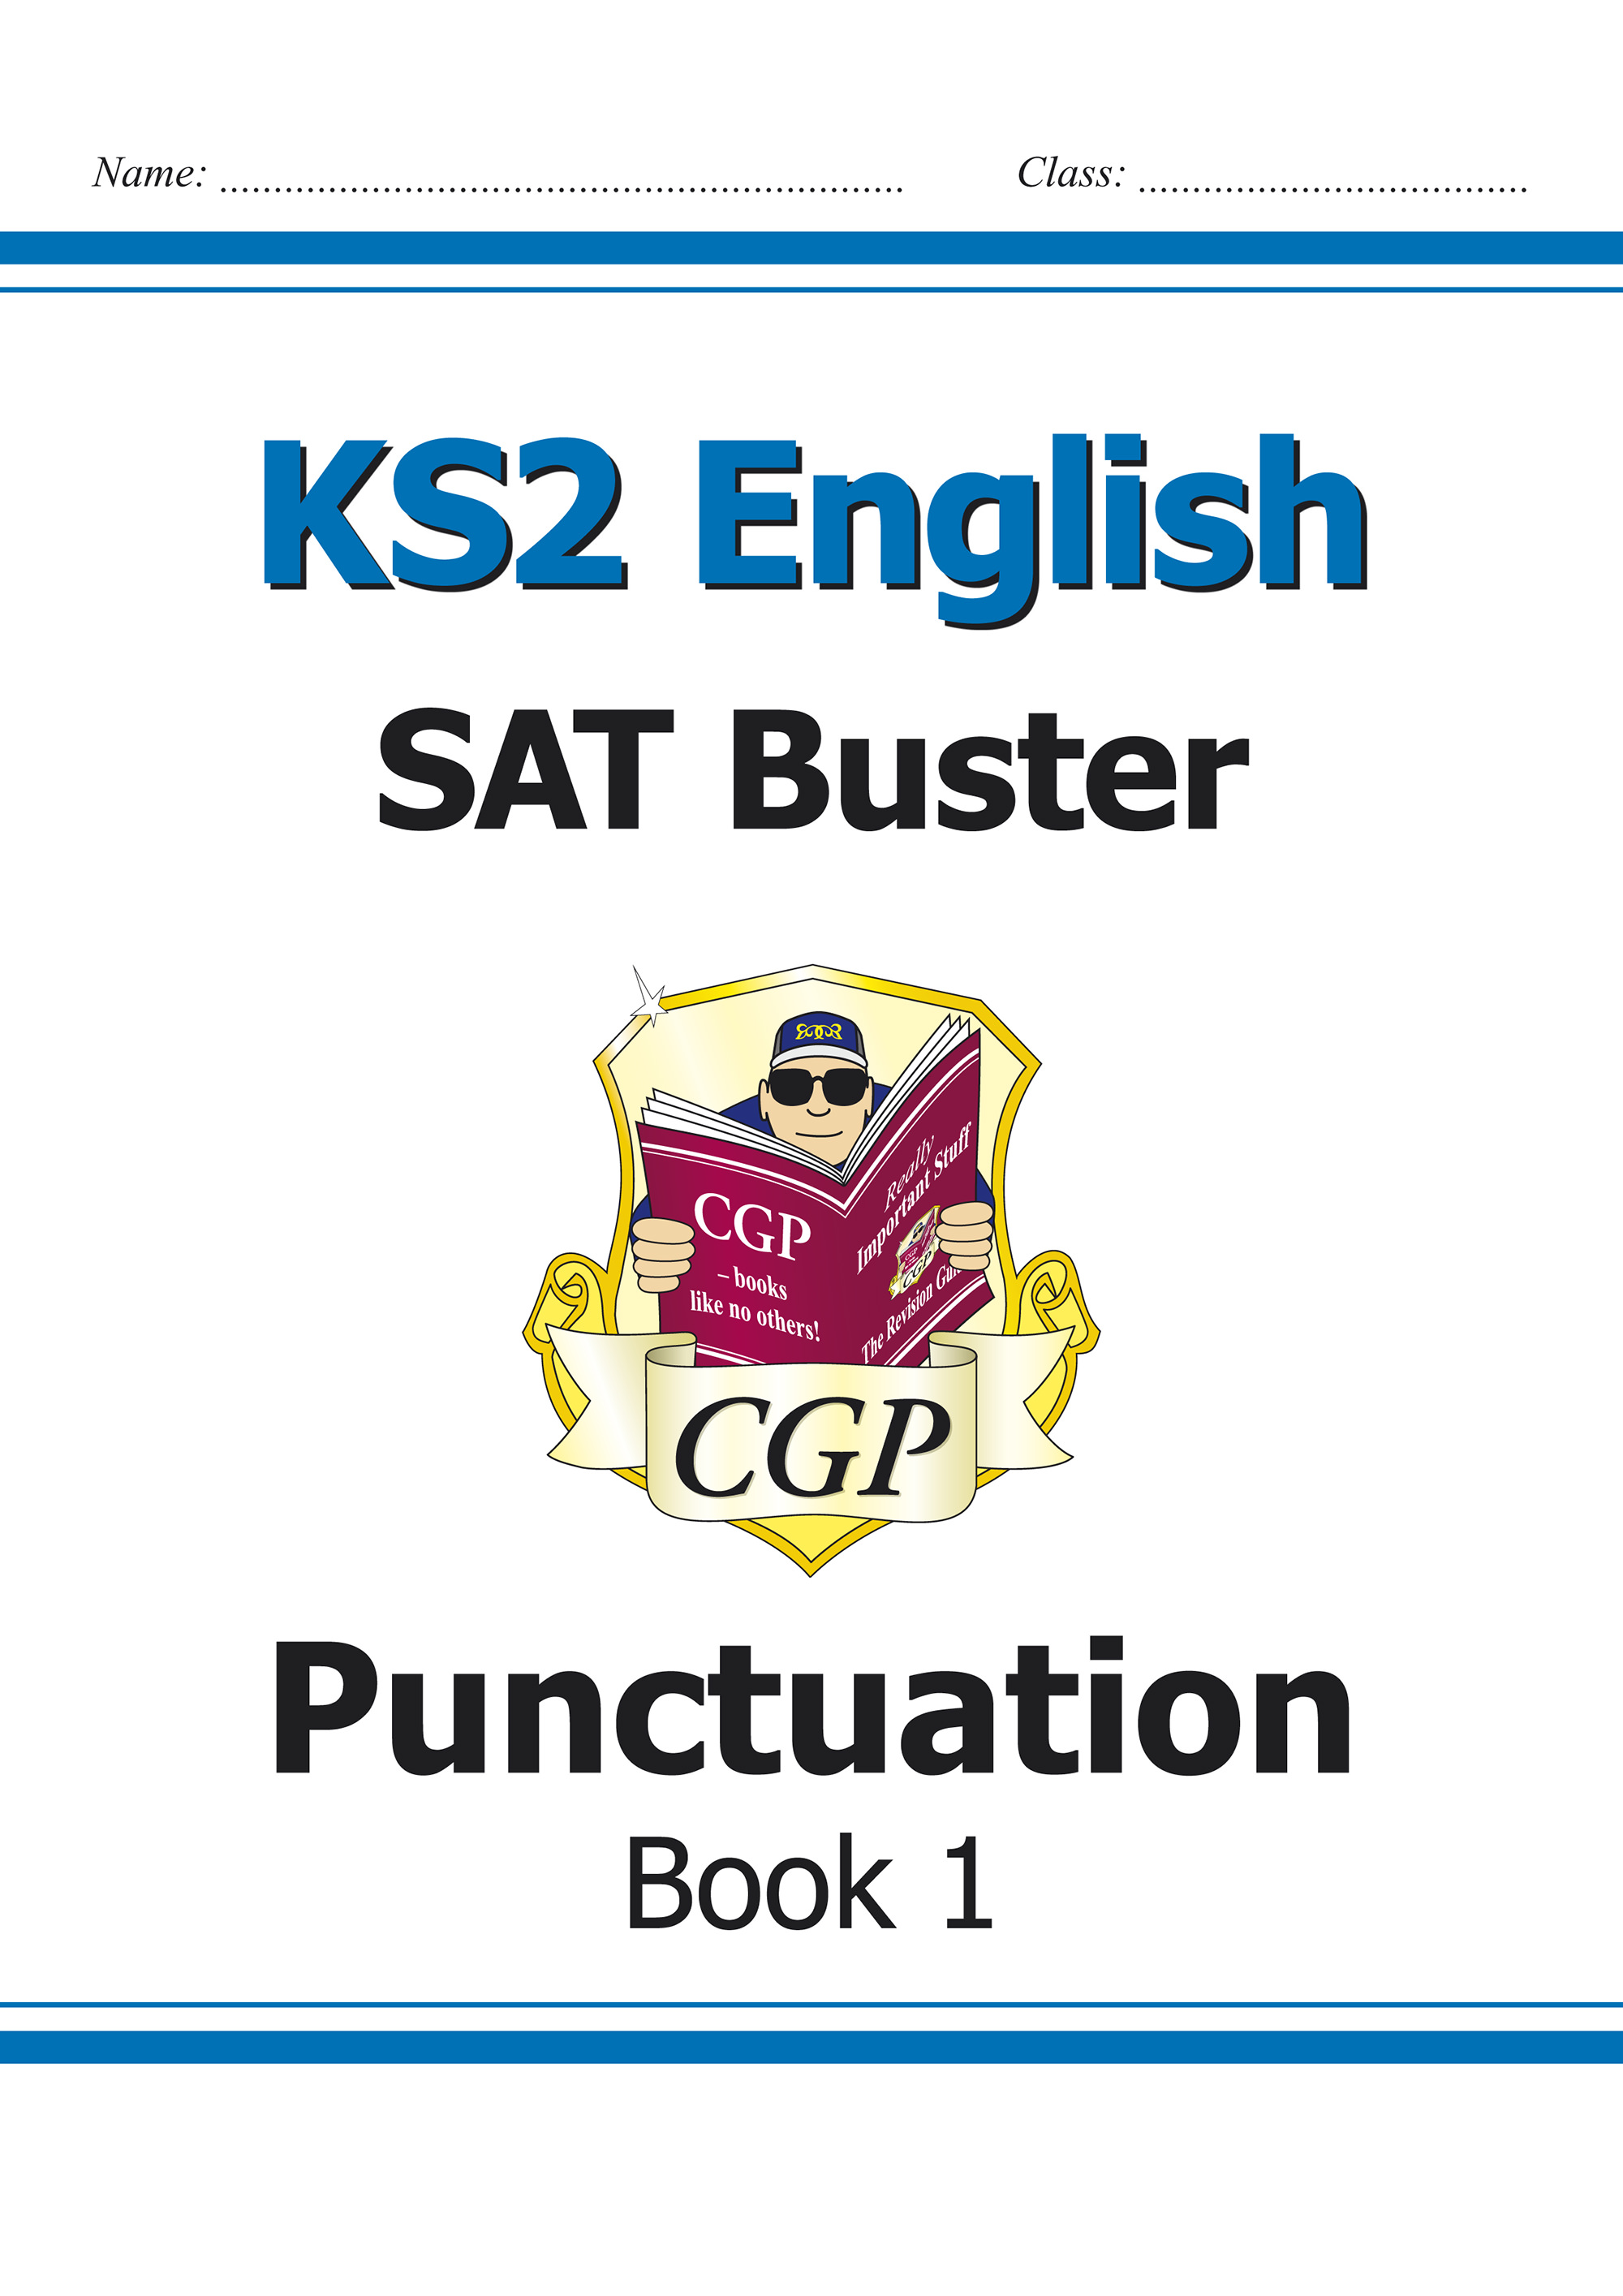 E6P23 - KS2 English SAT Buster: Punctuation Book 1 (for the 2019 tests)